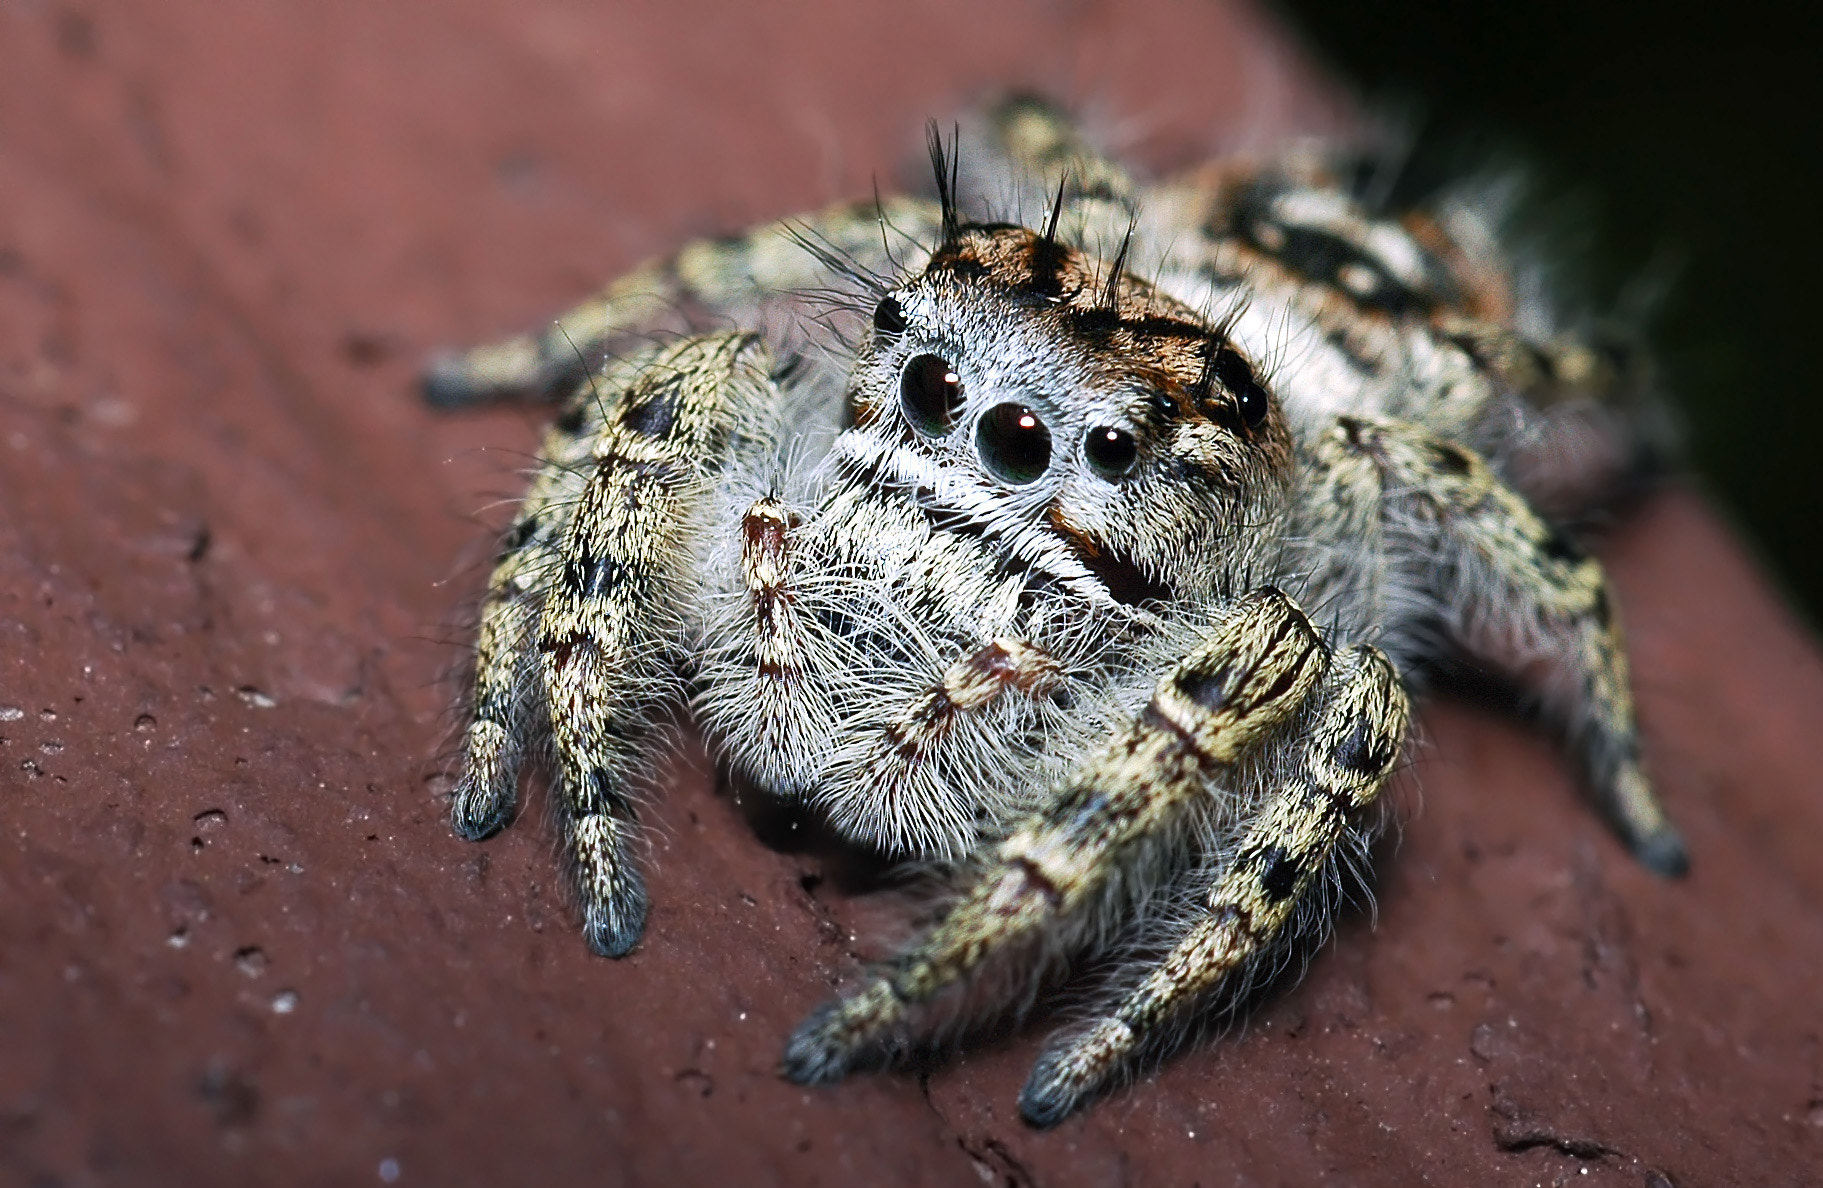 Photograph Phidippus putnami  by Enkased  on 500px